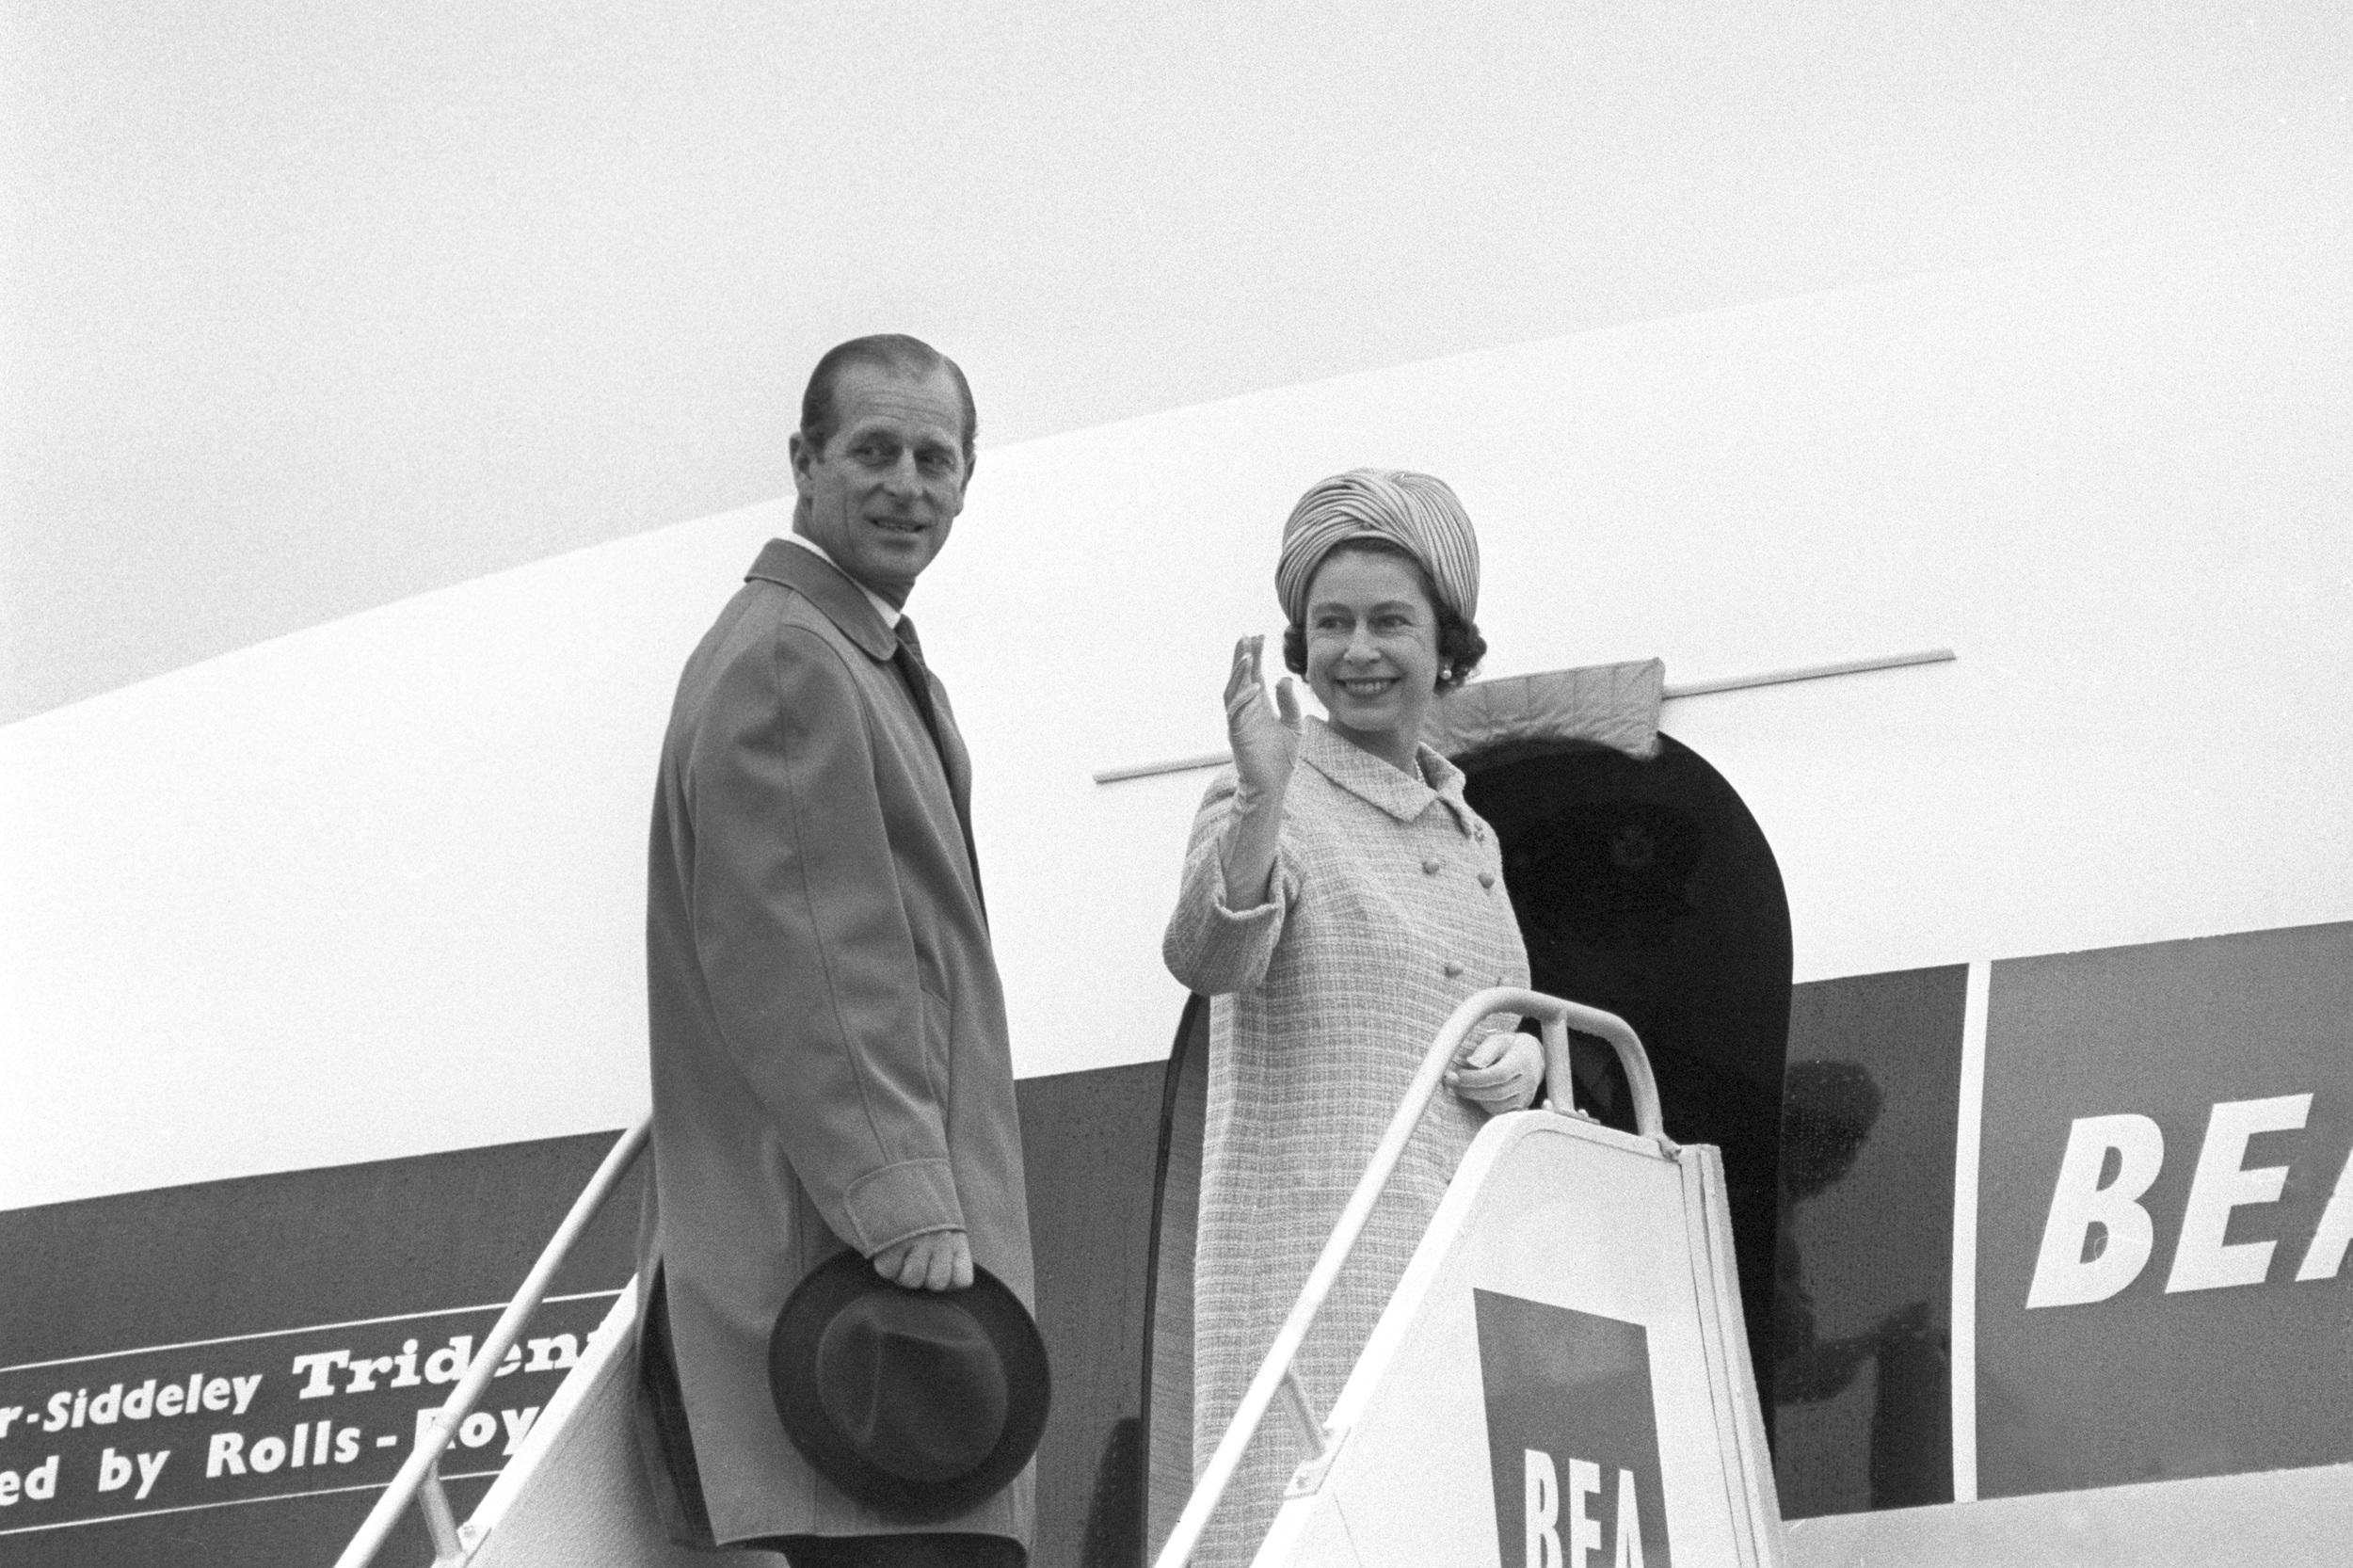 Queen Elizabeth II and the Duke of Edinburgh board their Trident airliner of the British European Airways at Heathrow Airport, on their way to Malta for a four-day visit.